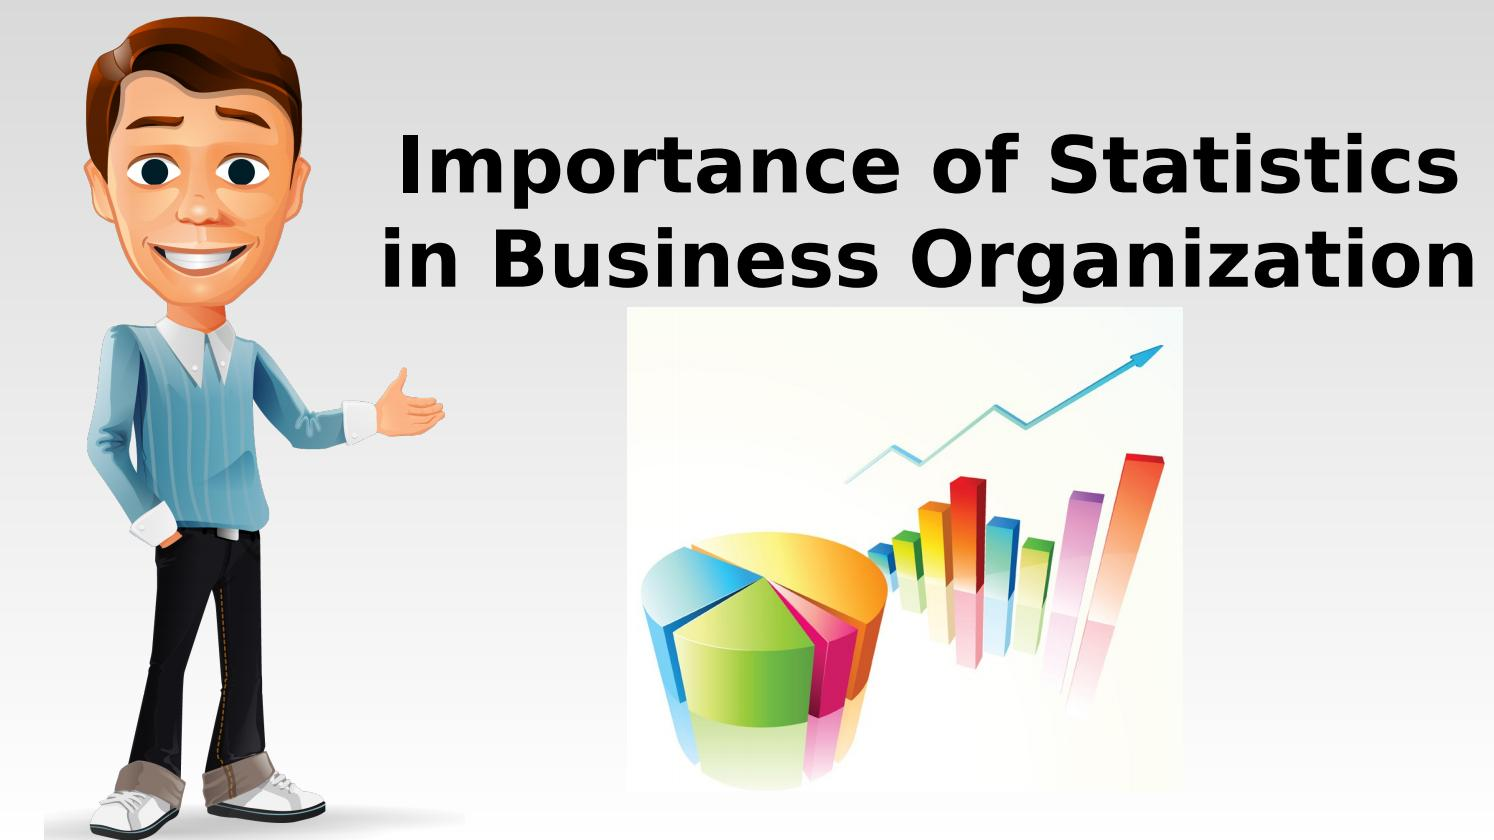 Importance of Statistics in Business